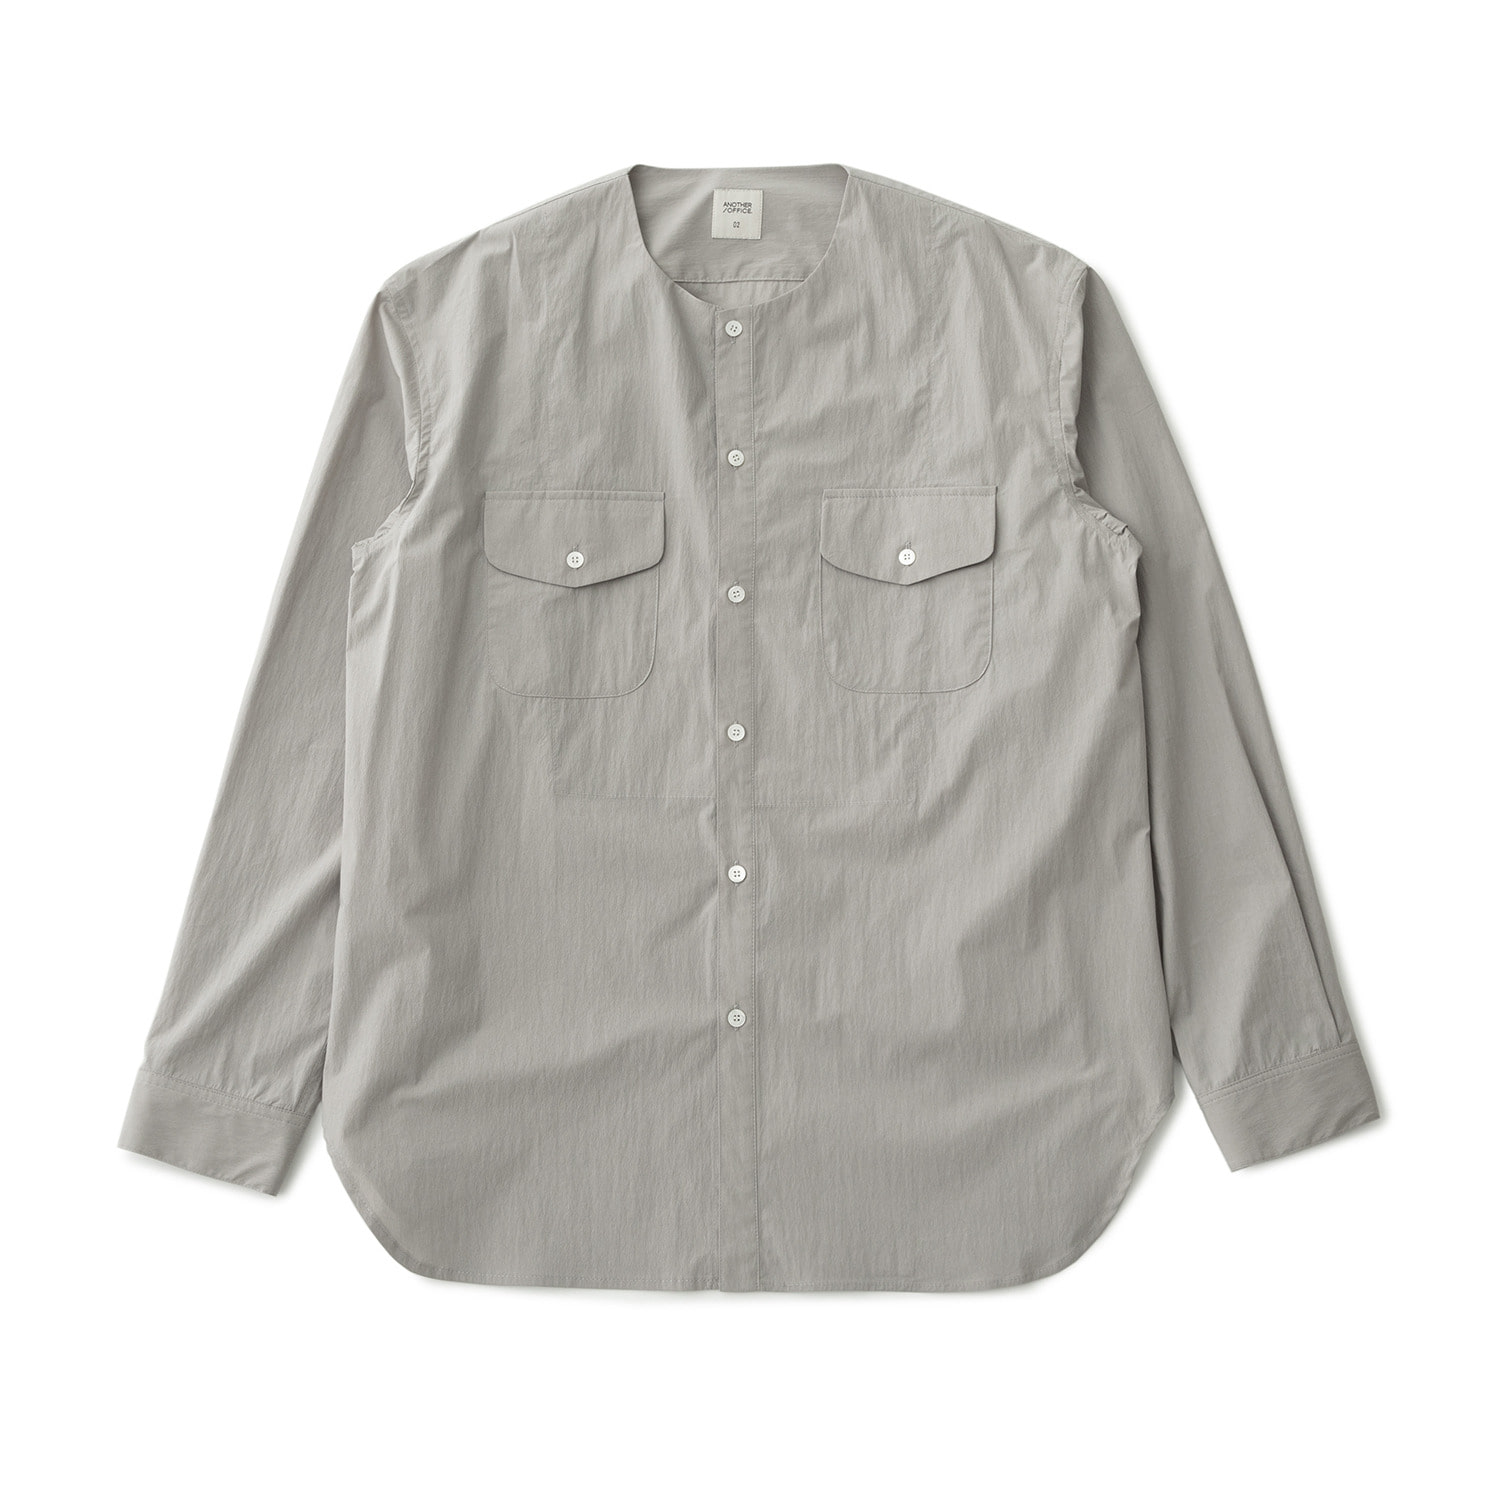 A/O 21SS Layer Round-neck Shirt (Misty Gray)